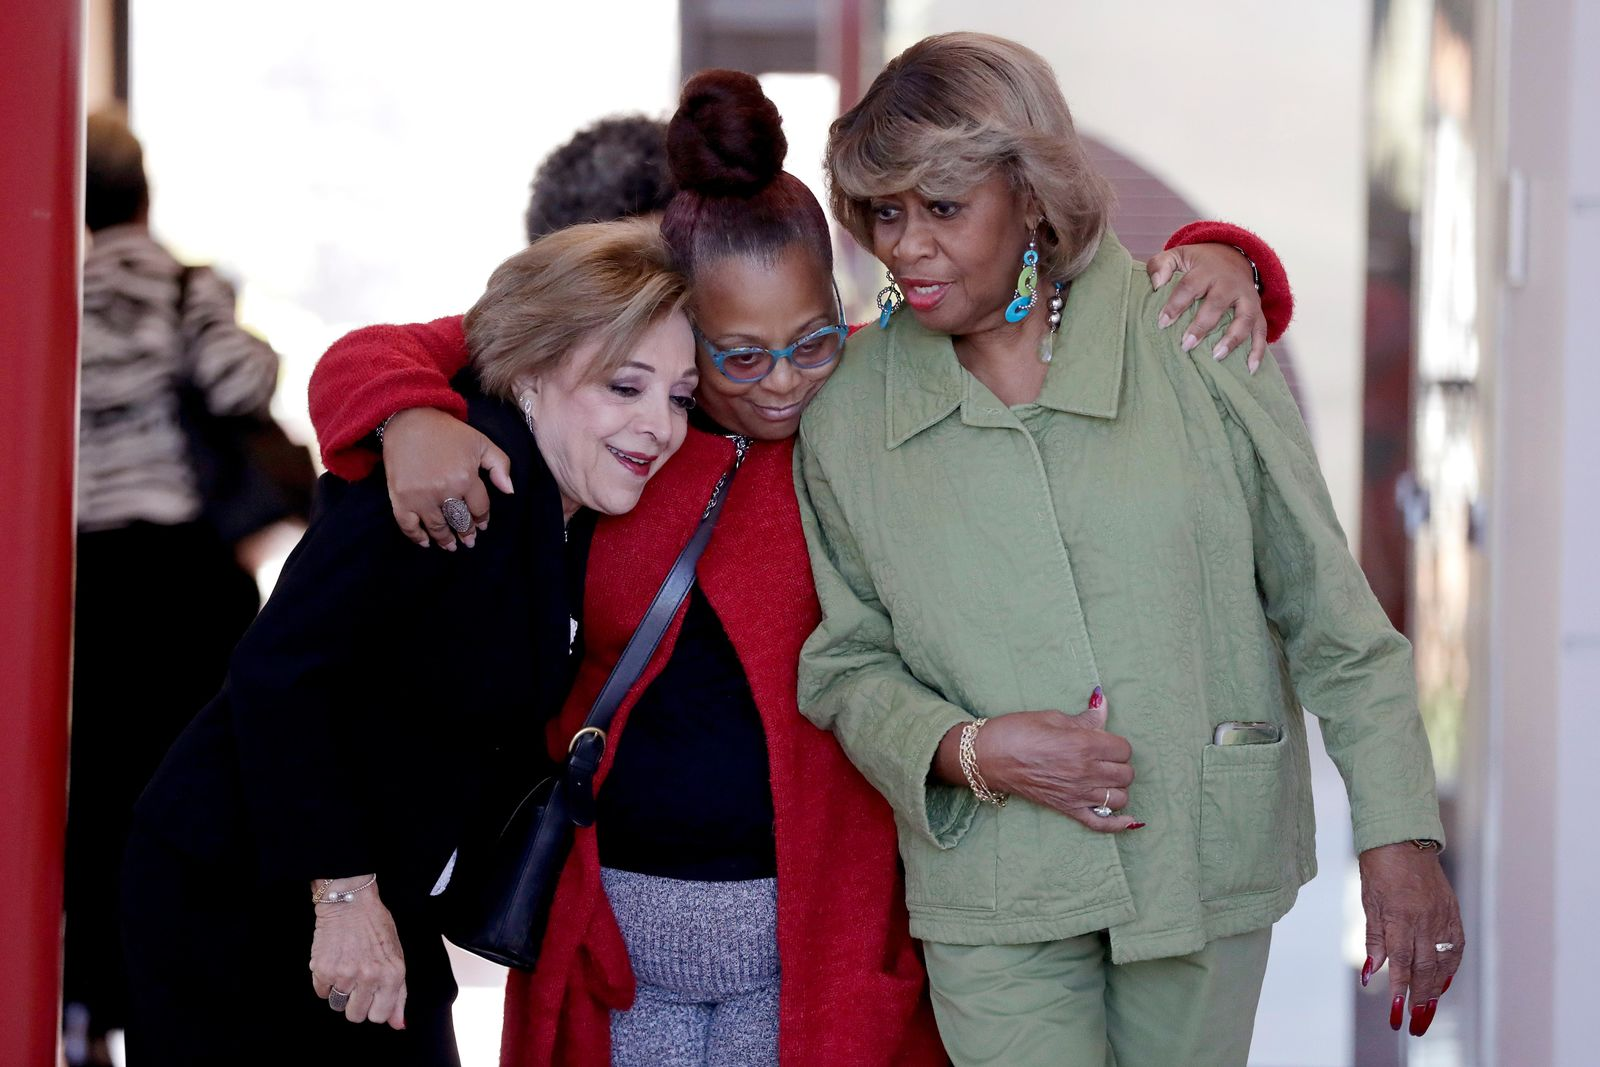 Women embrace as they walk out of Gilliam Concert Hall after viewing the open casket of U.S. Rep. Elijah Cummings during a viewing at Morgan State University, Wednesday, Oct. 23, 2019, in Baltimore.{ } (AP Photo/Julio Cortez)